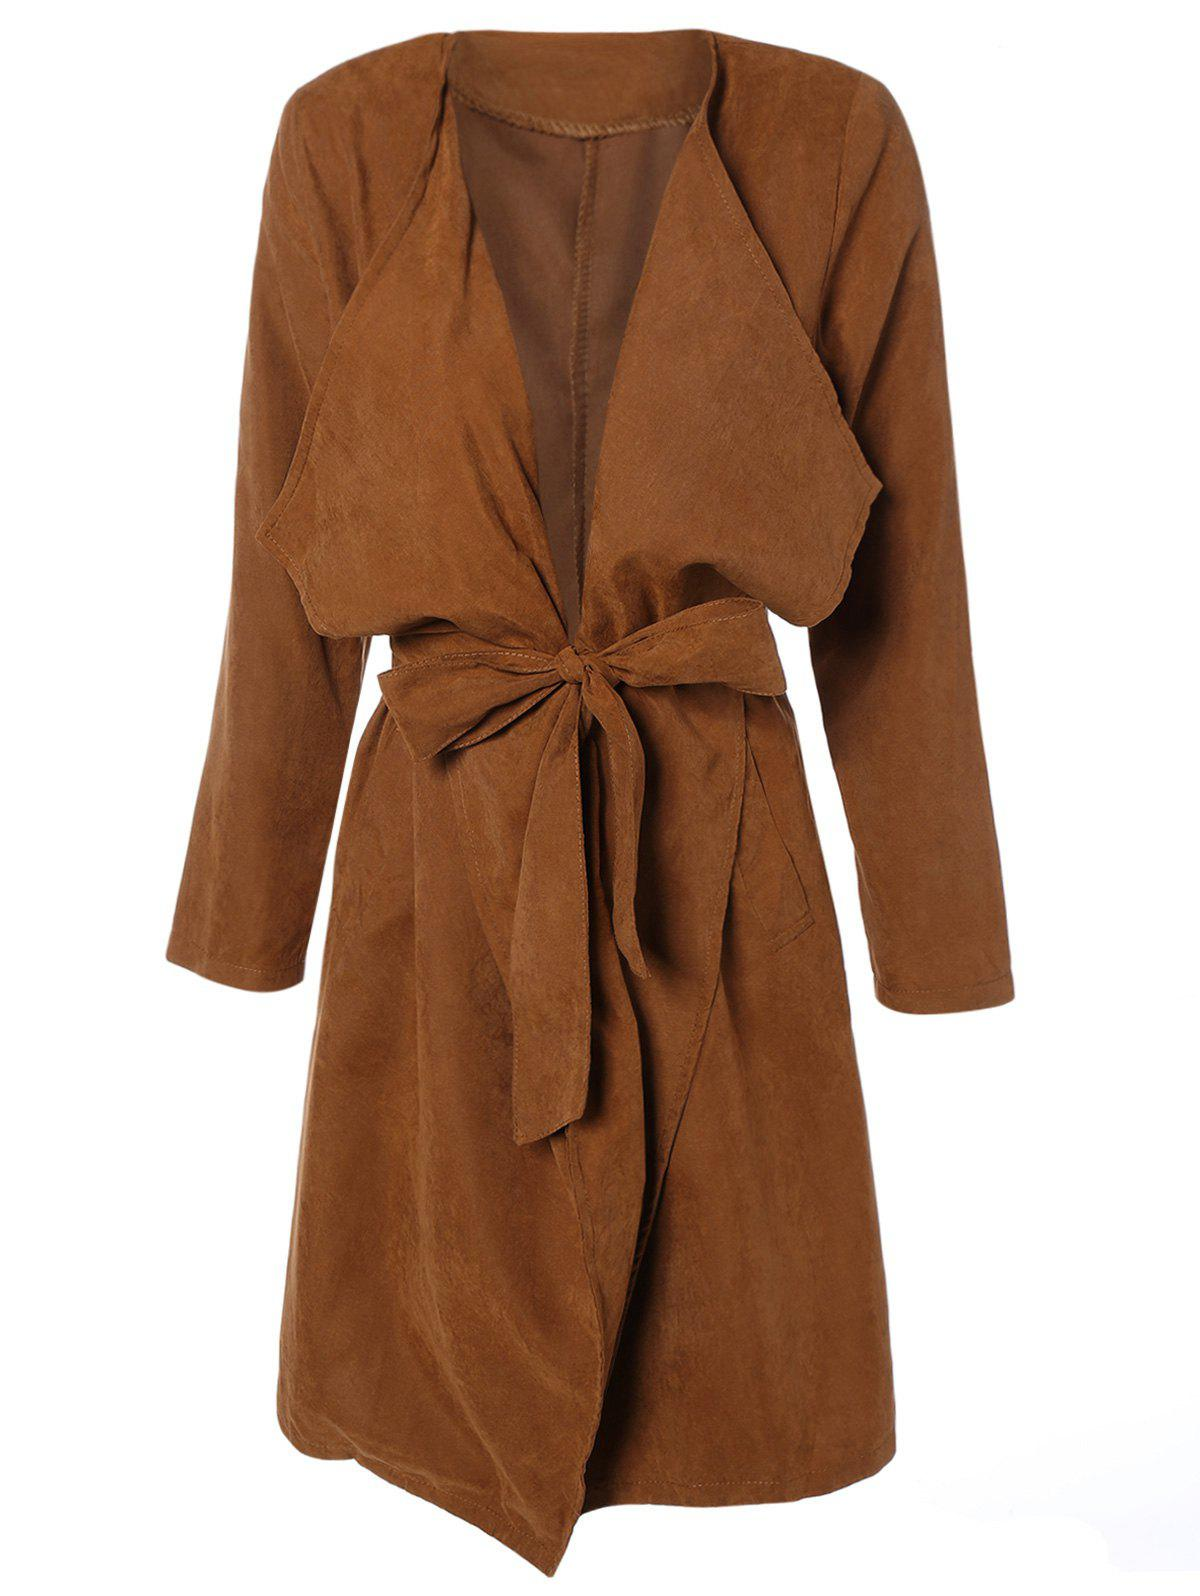 Discount Draped Wrap Coat with Belt